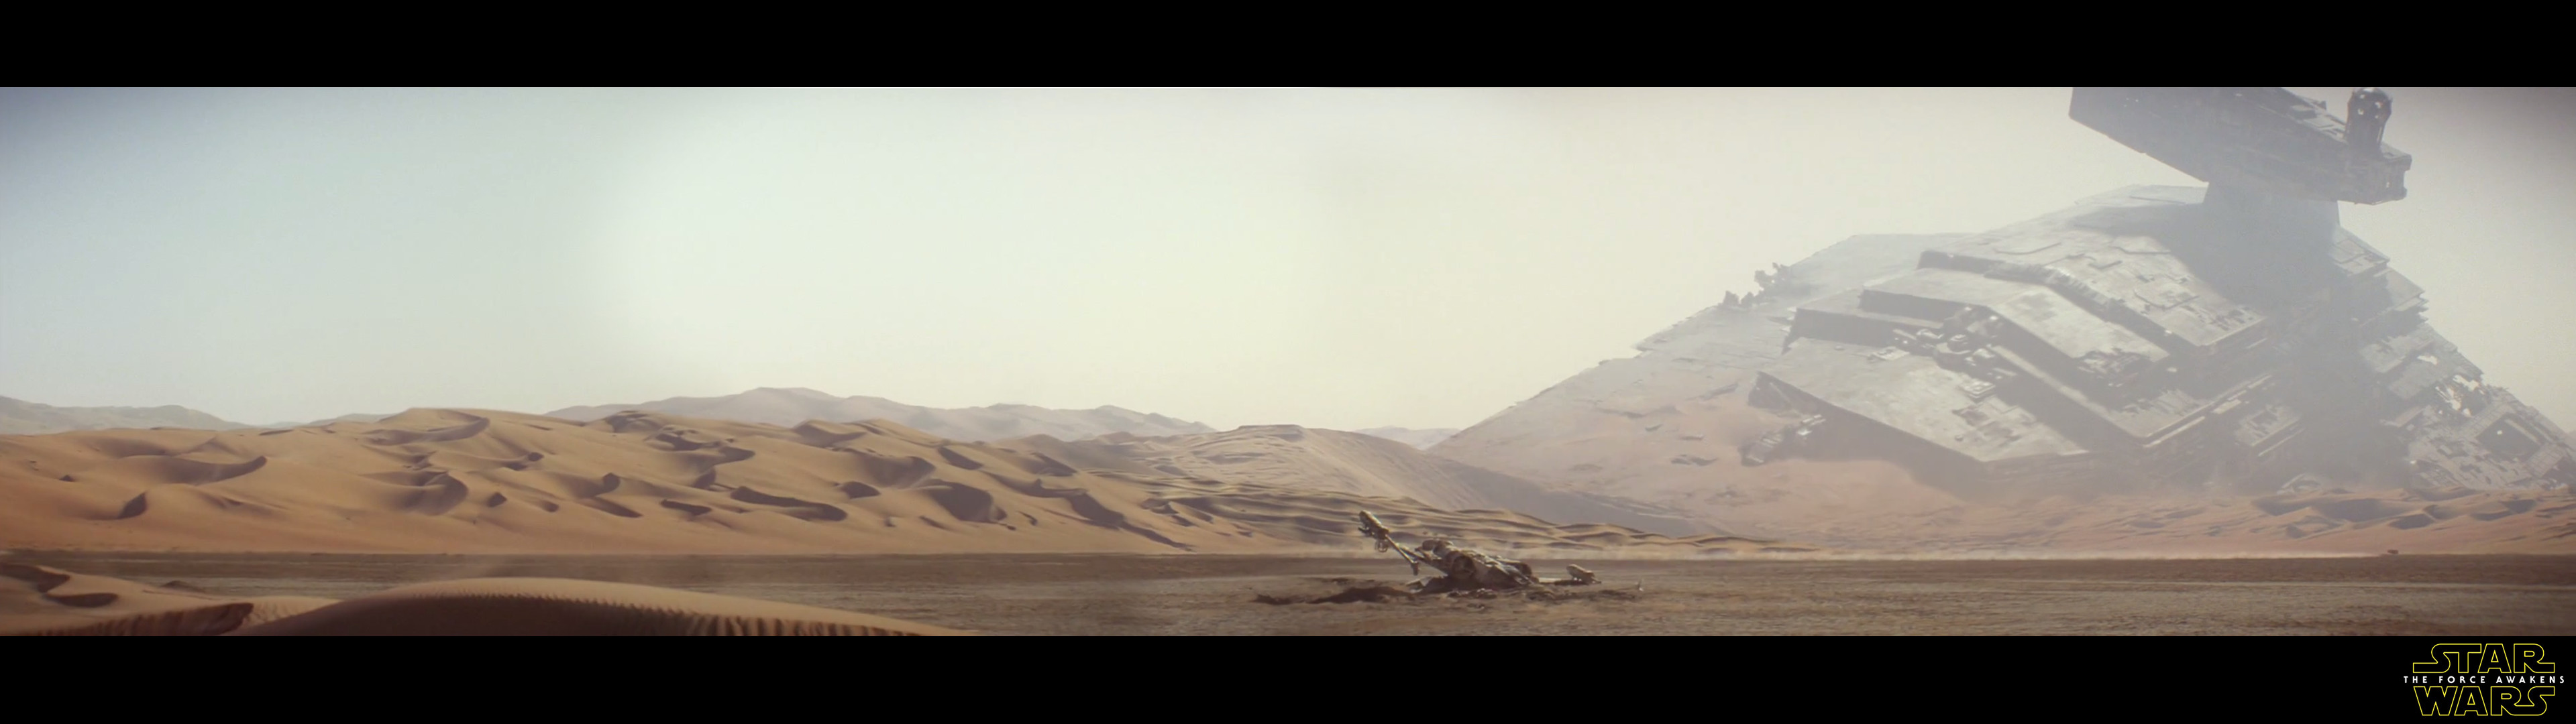 I spliced the new trailer's opening pan together into a dual monitor  wallpaper. Enjoy!